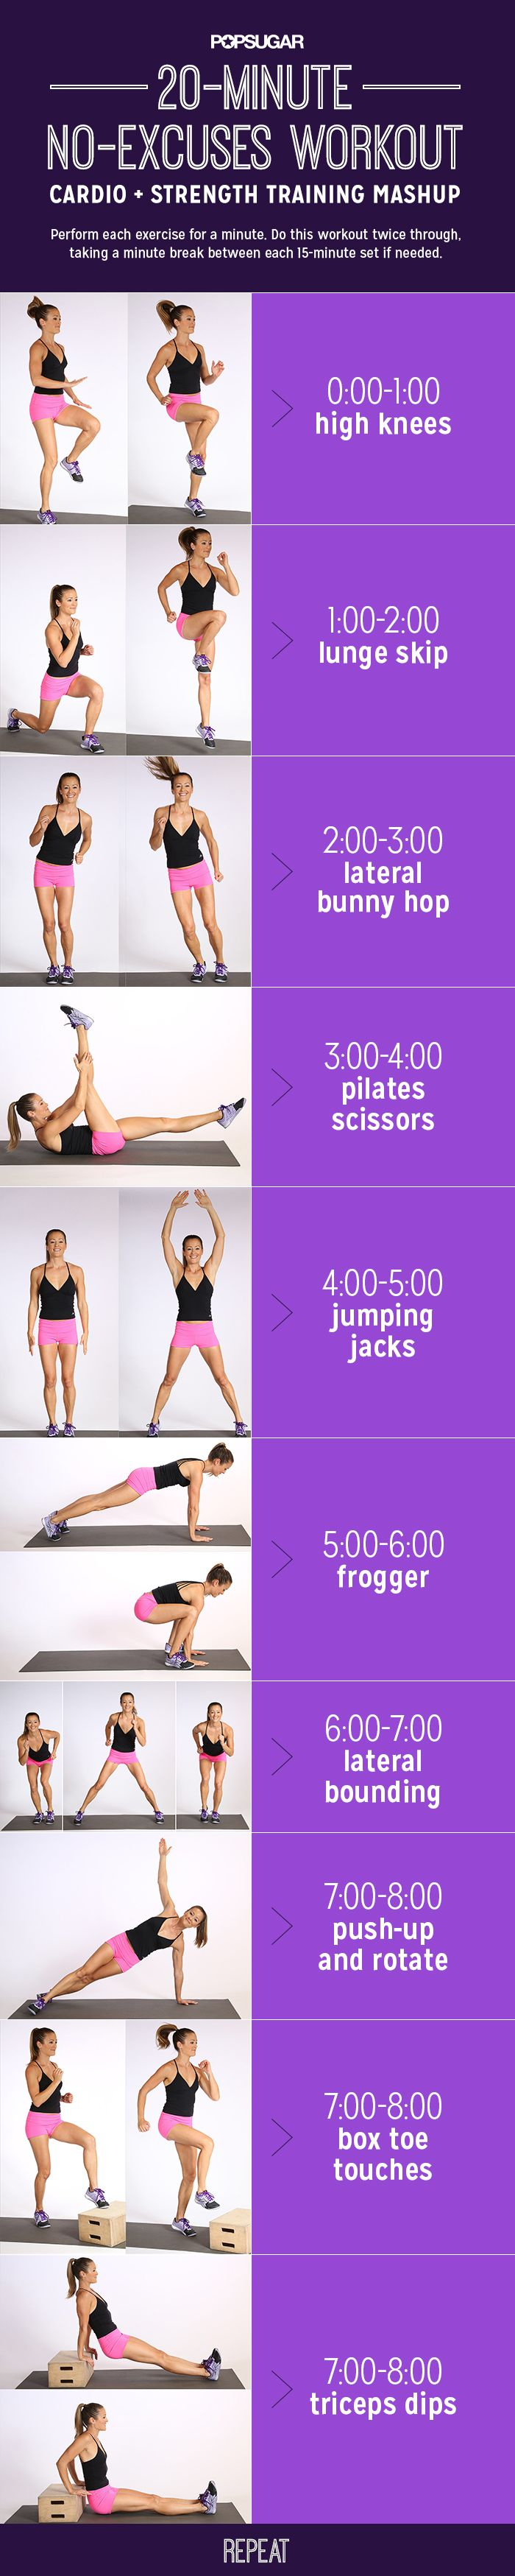 Printable Workout Quick Effective Cardio No Running Required Fitsugar 20 Minute Workout No Excuses Workout Cardio Workout